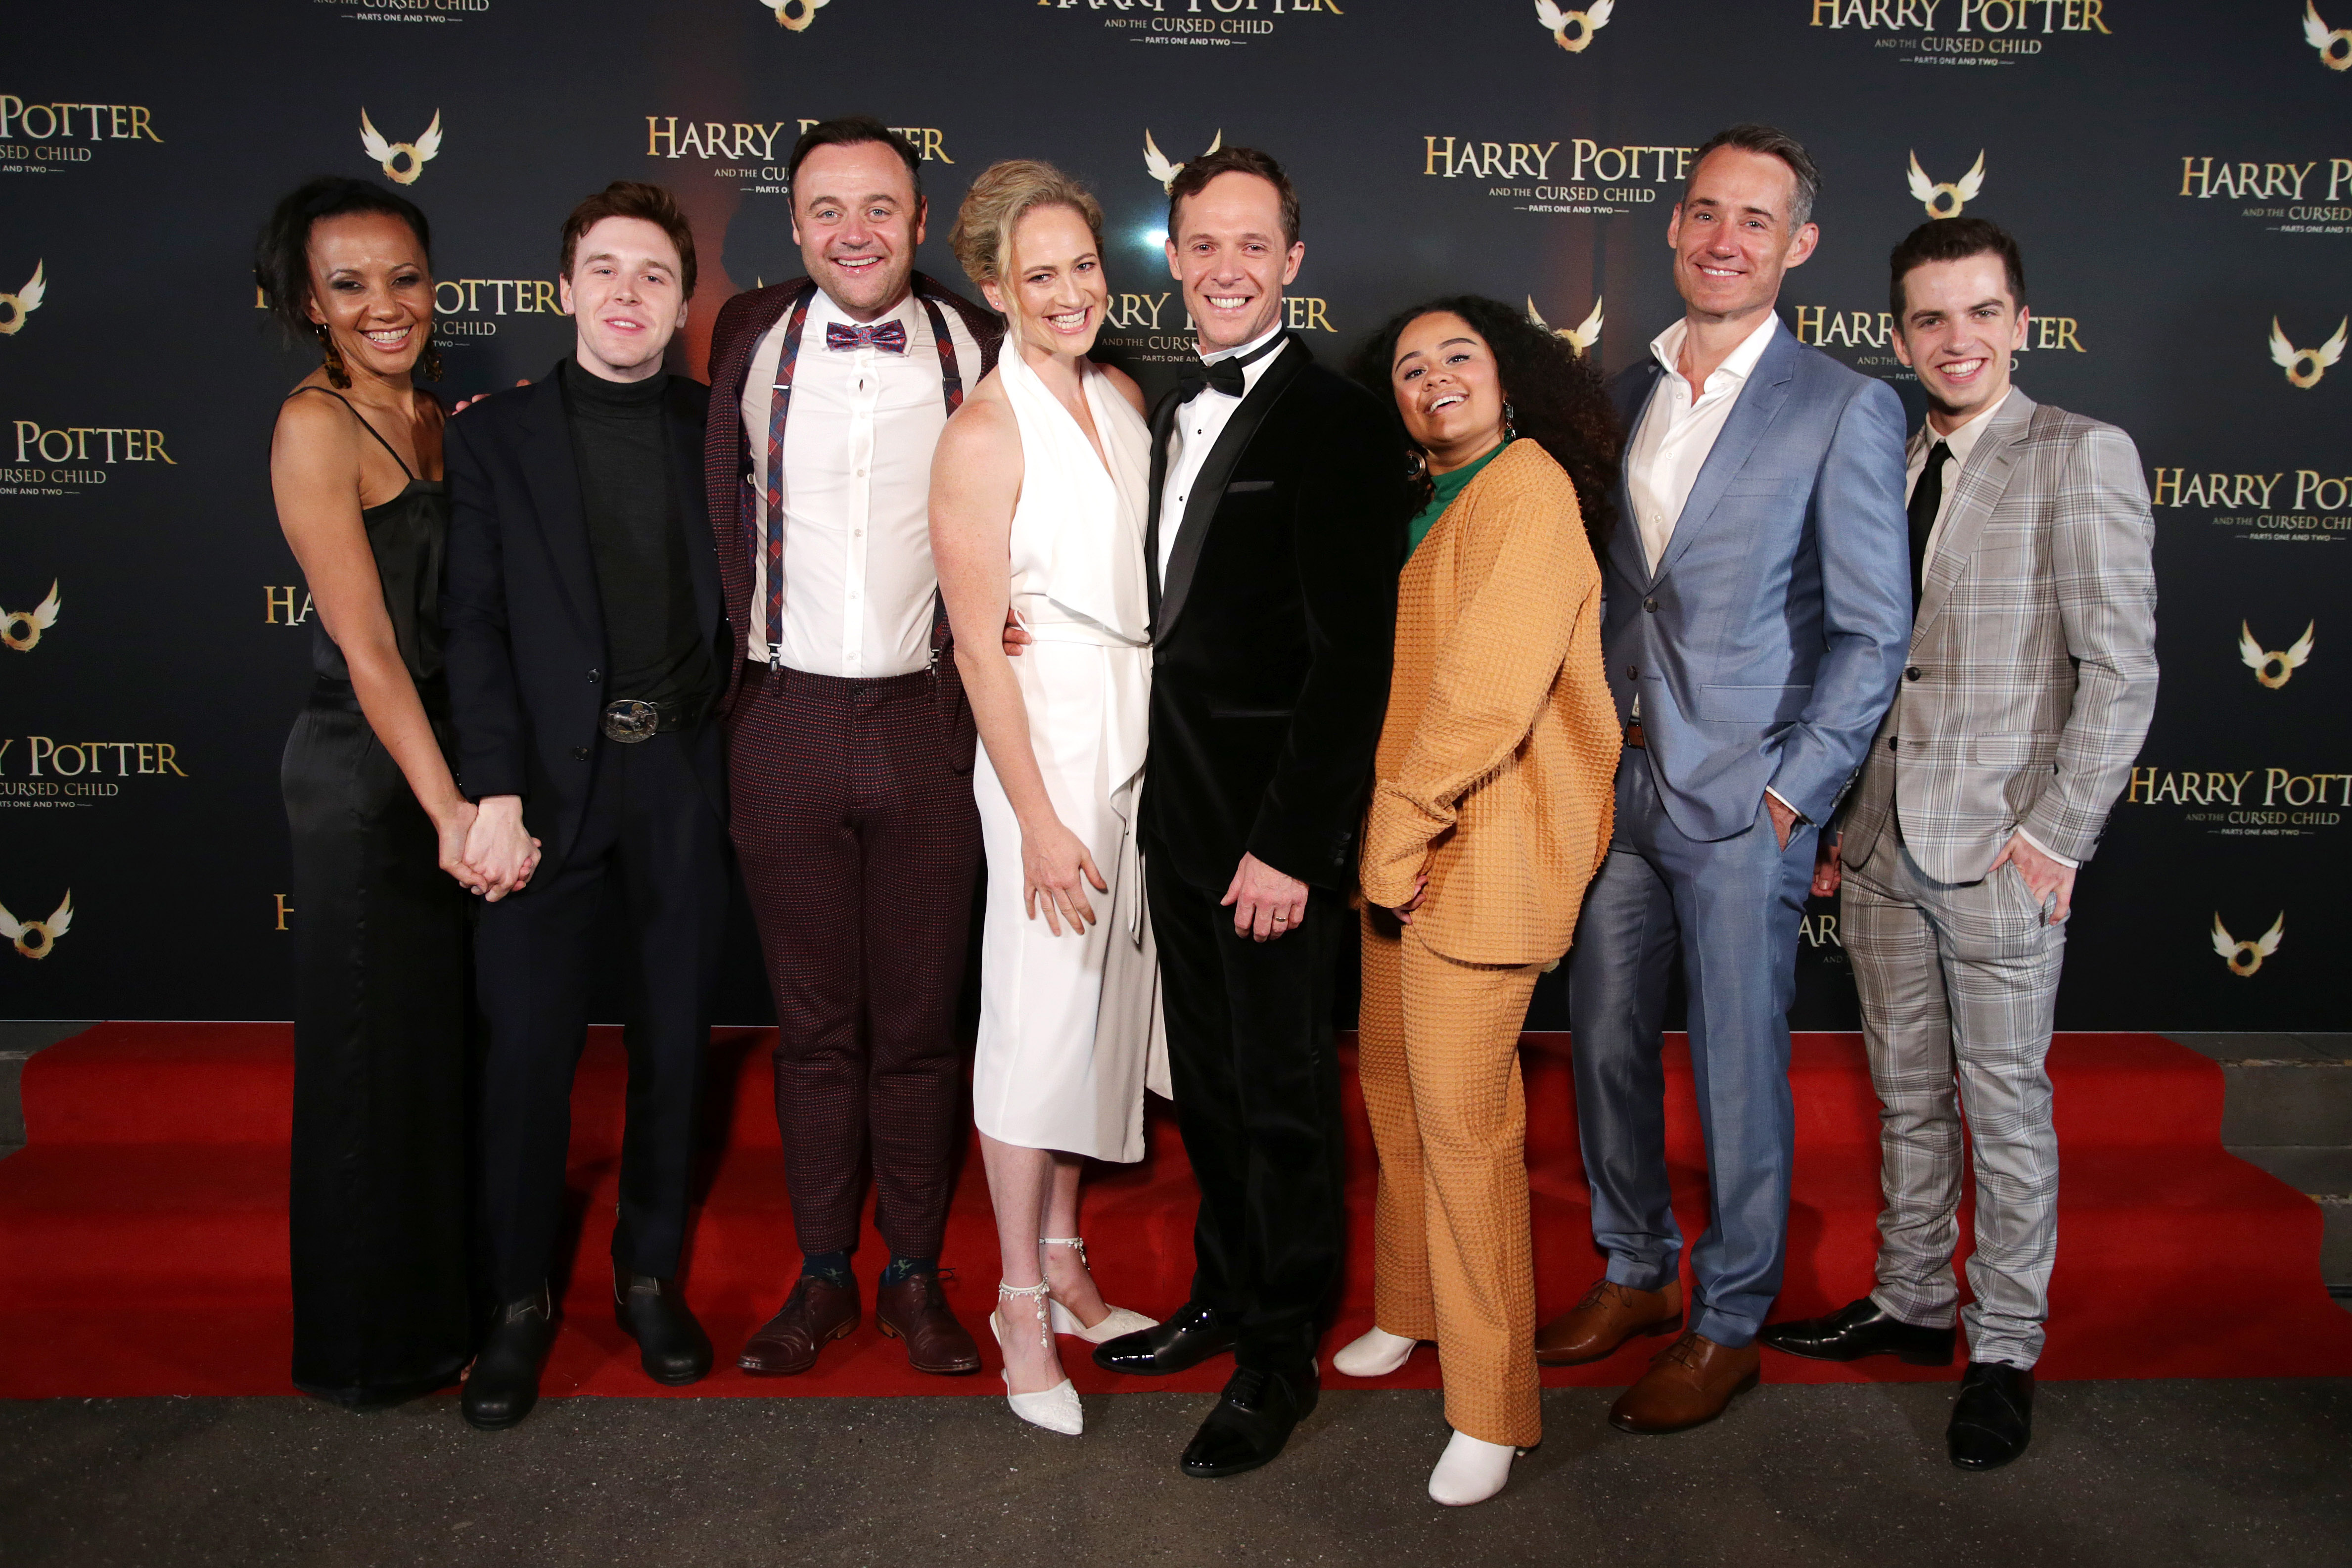 Harry Potter and the Cursed Child Red Carpet-0344